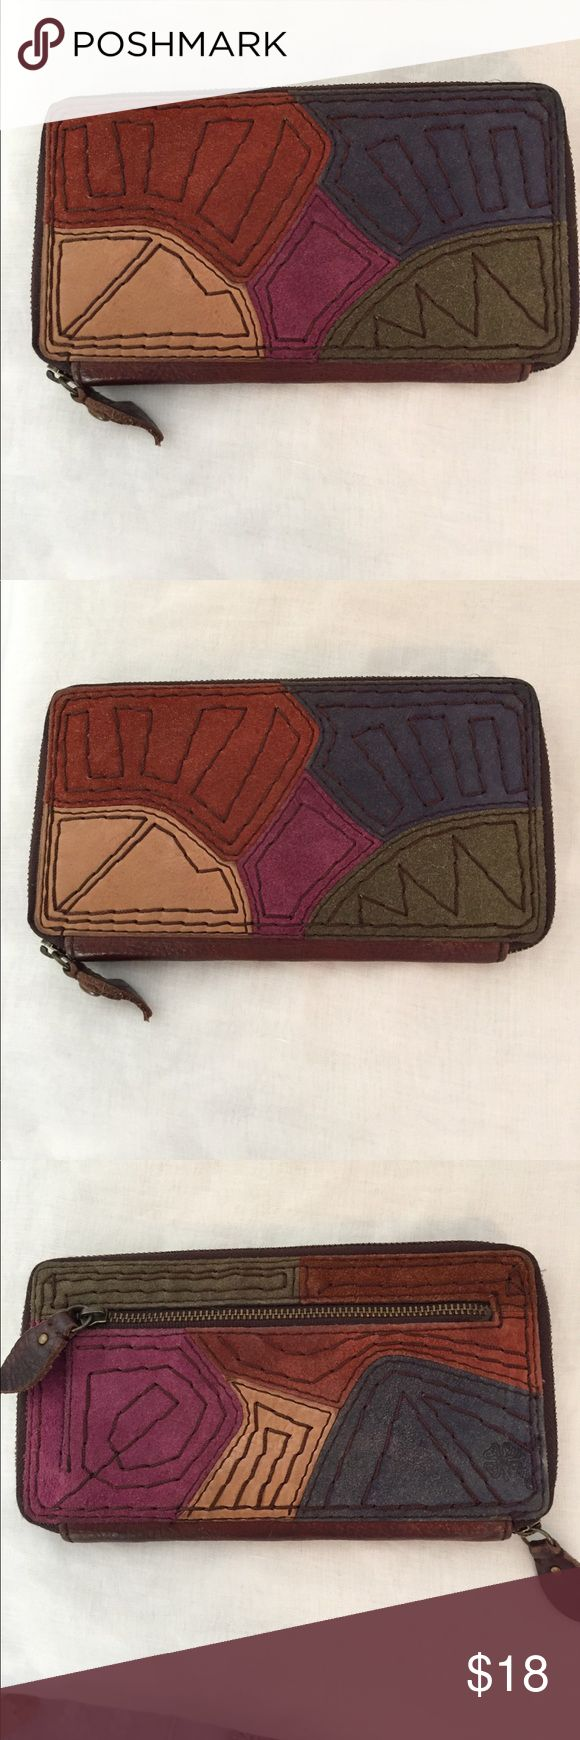 LUCKY Wallet In super condition! 2 zippered change pockets 2 currency sleeves and 8 card slots. I welcome reasonable offers! I ship the same or next business day! Lucky Brand Bags Wallets